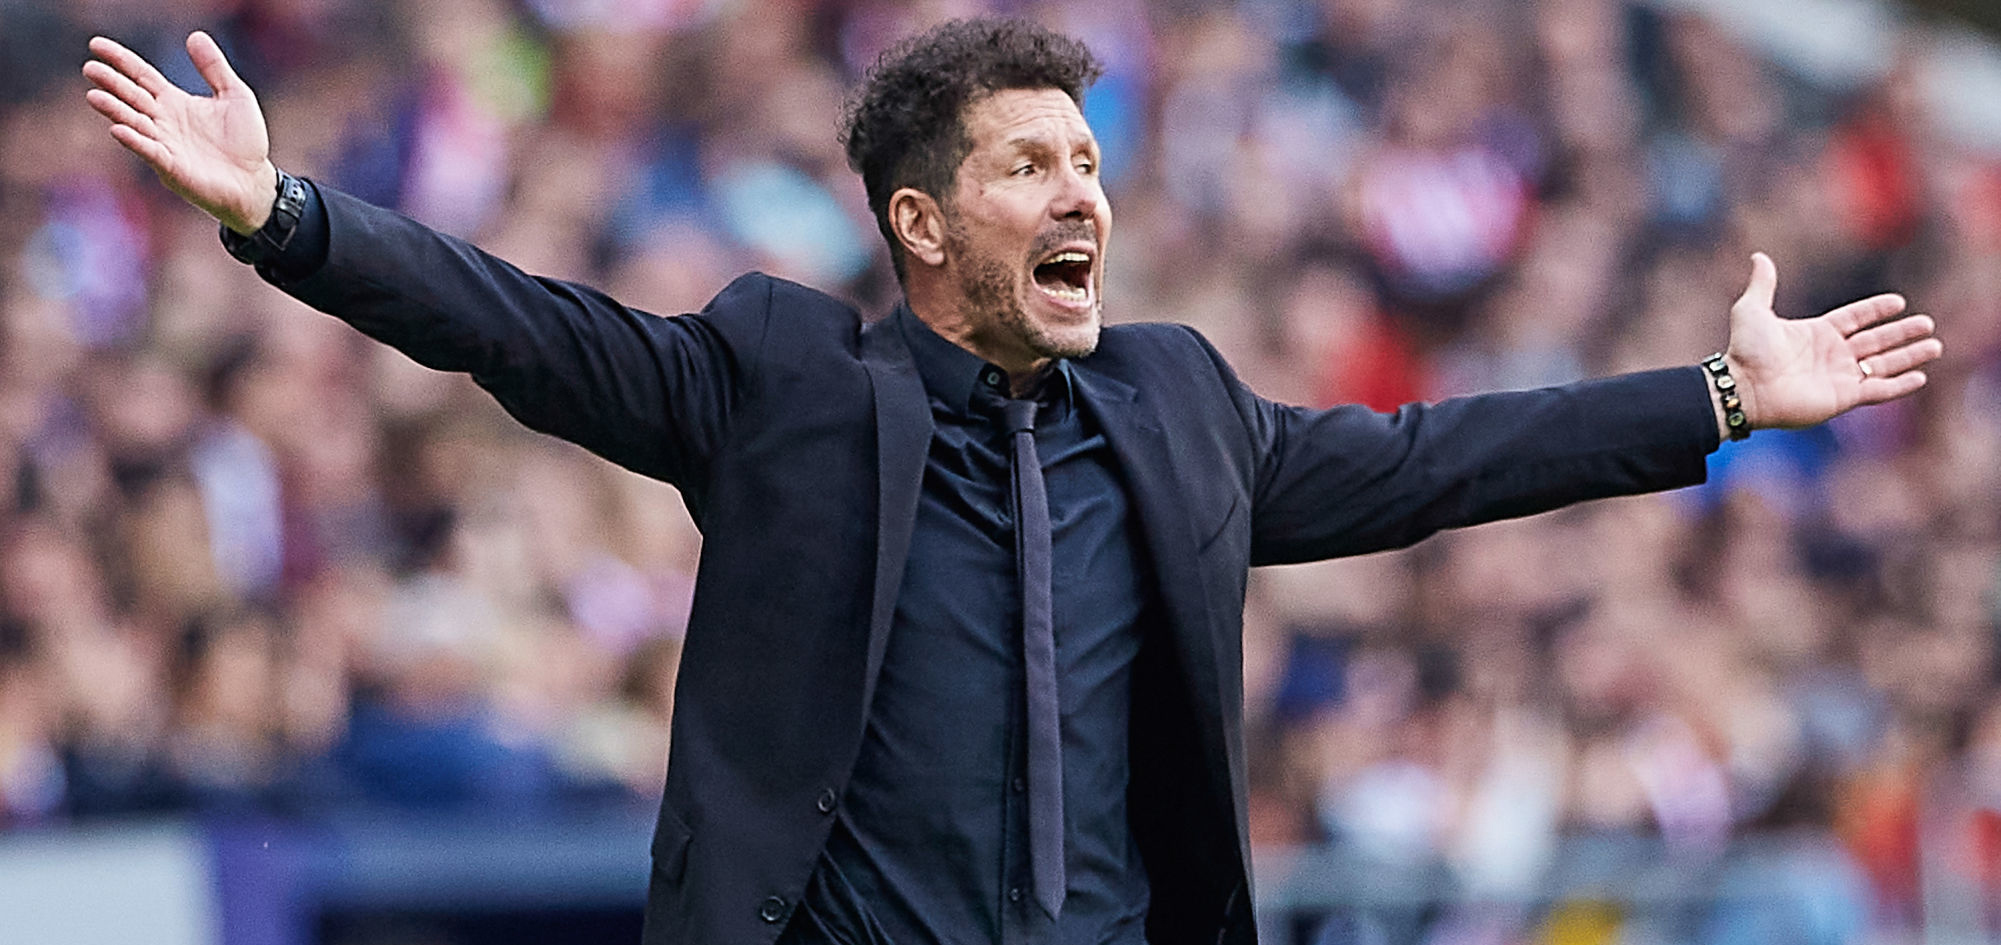 Atlético Madrid trainer Diego Simeone is gesturing during an UEFA Champions League game